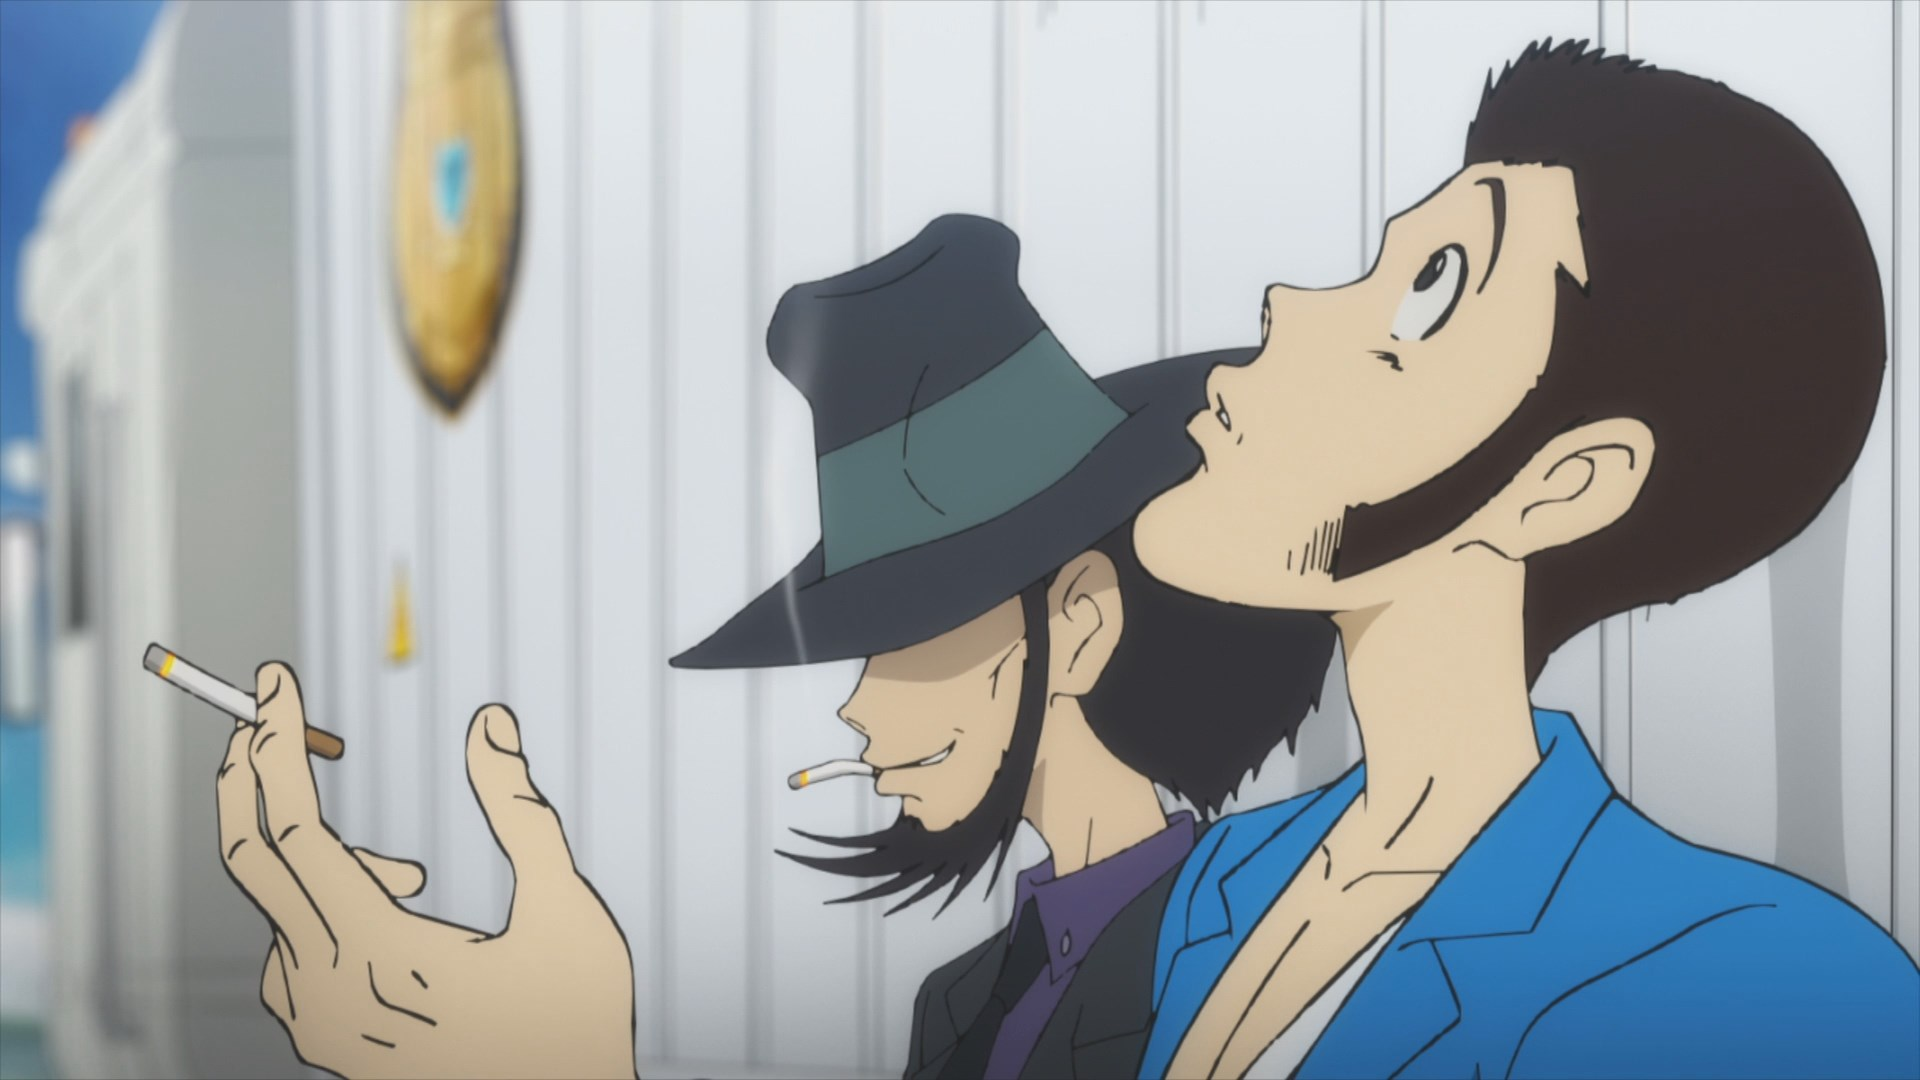 Lupin the Third Part 5 - 23